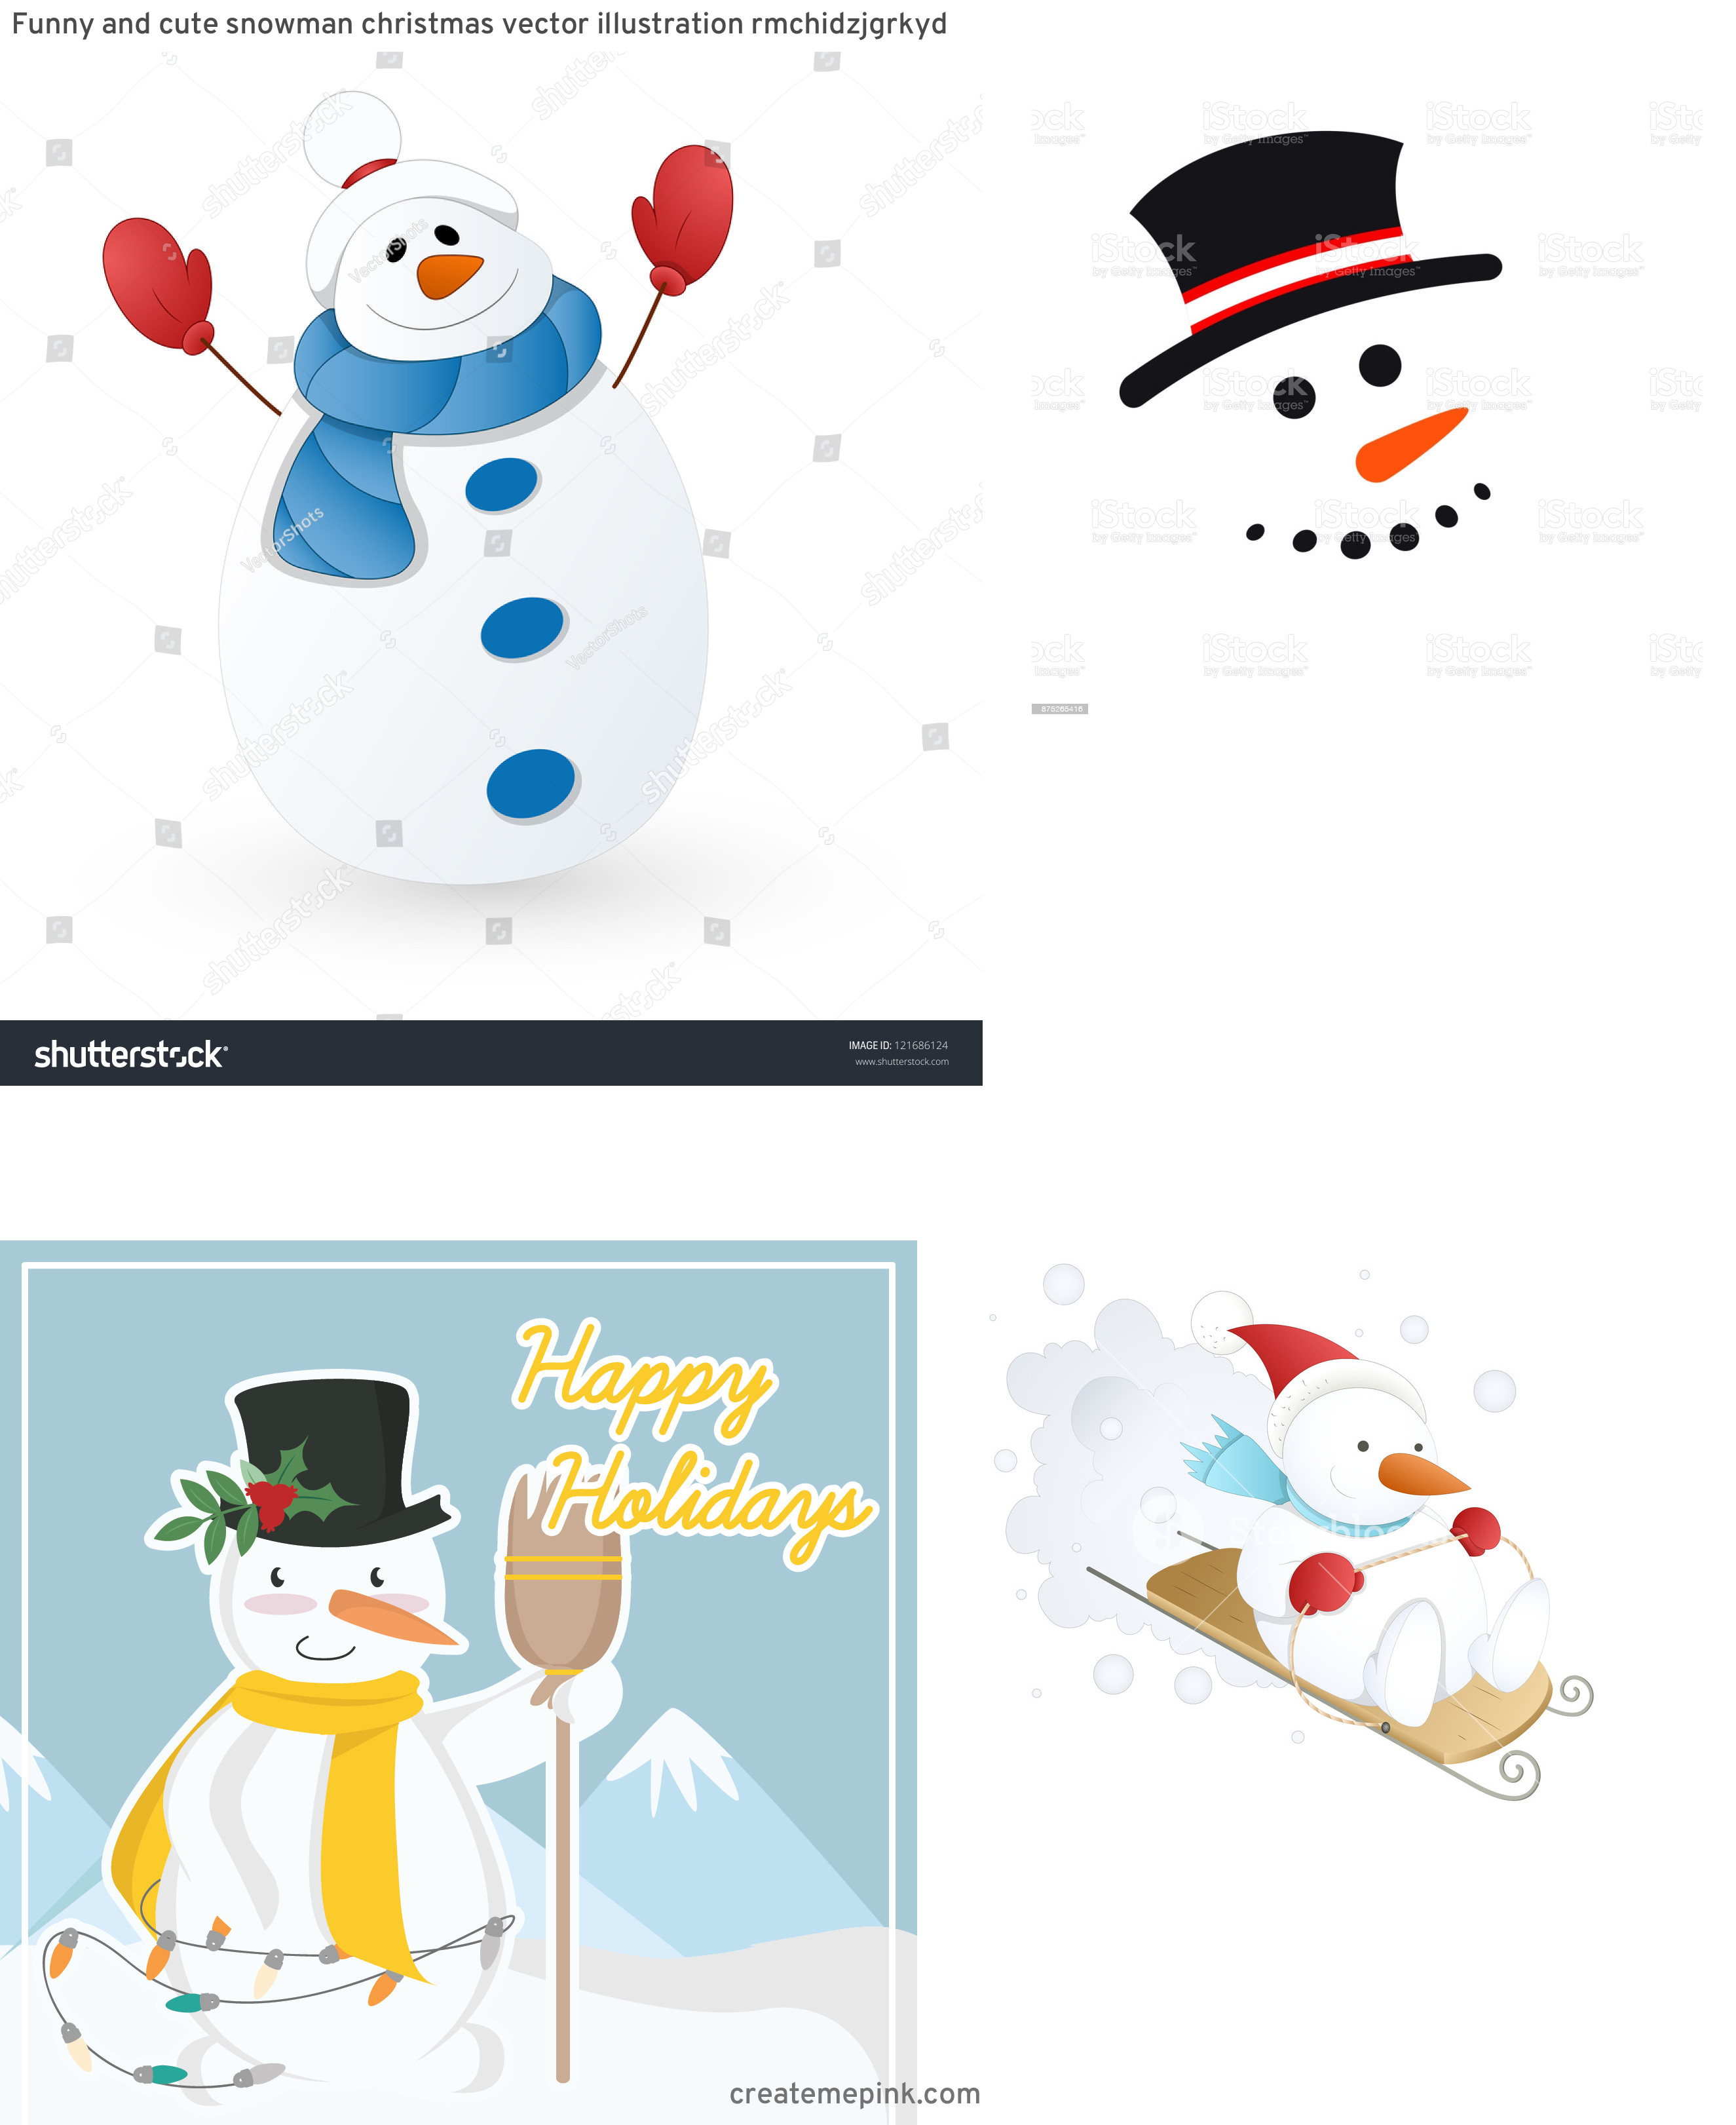 Cute Snowman Vector Illustration: Funny And Cute Snowman Christmas Vector Illustration Rmchidzjgrkyd